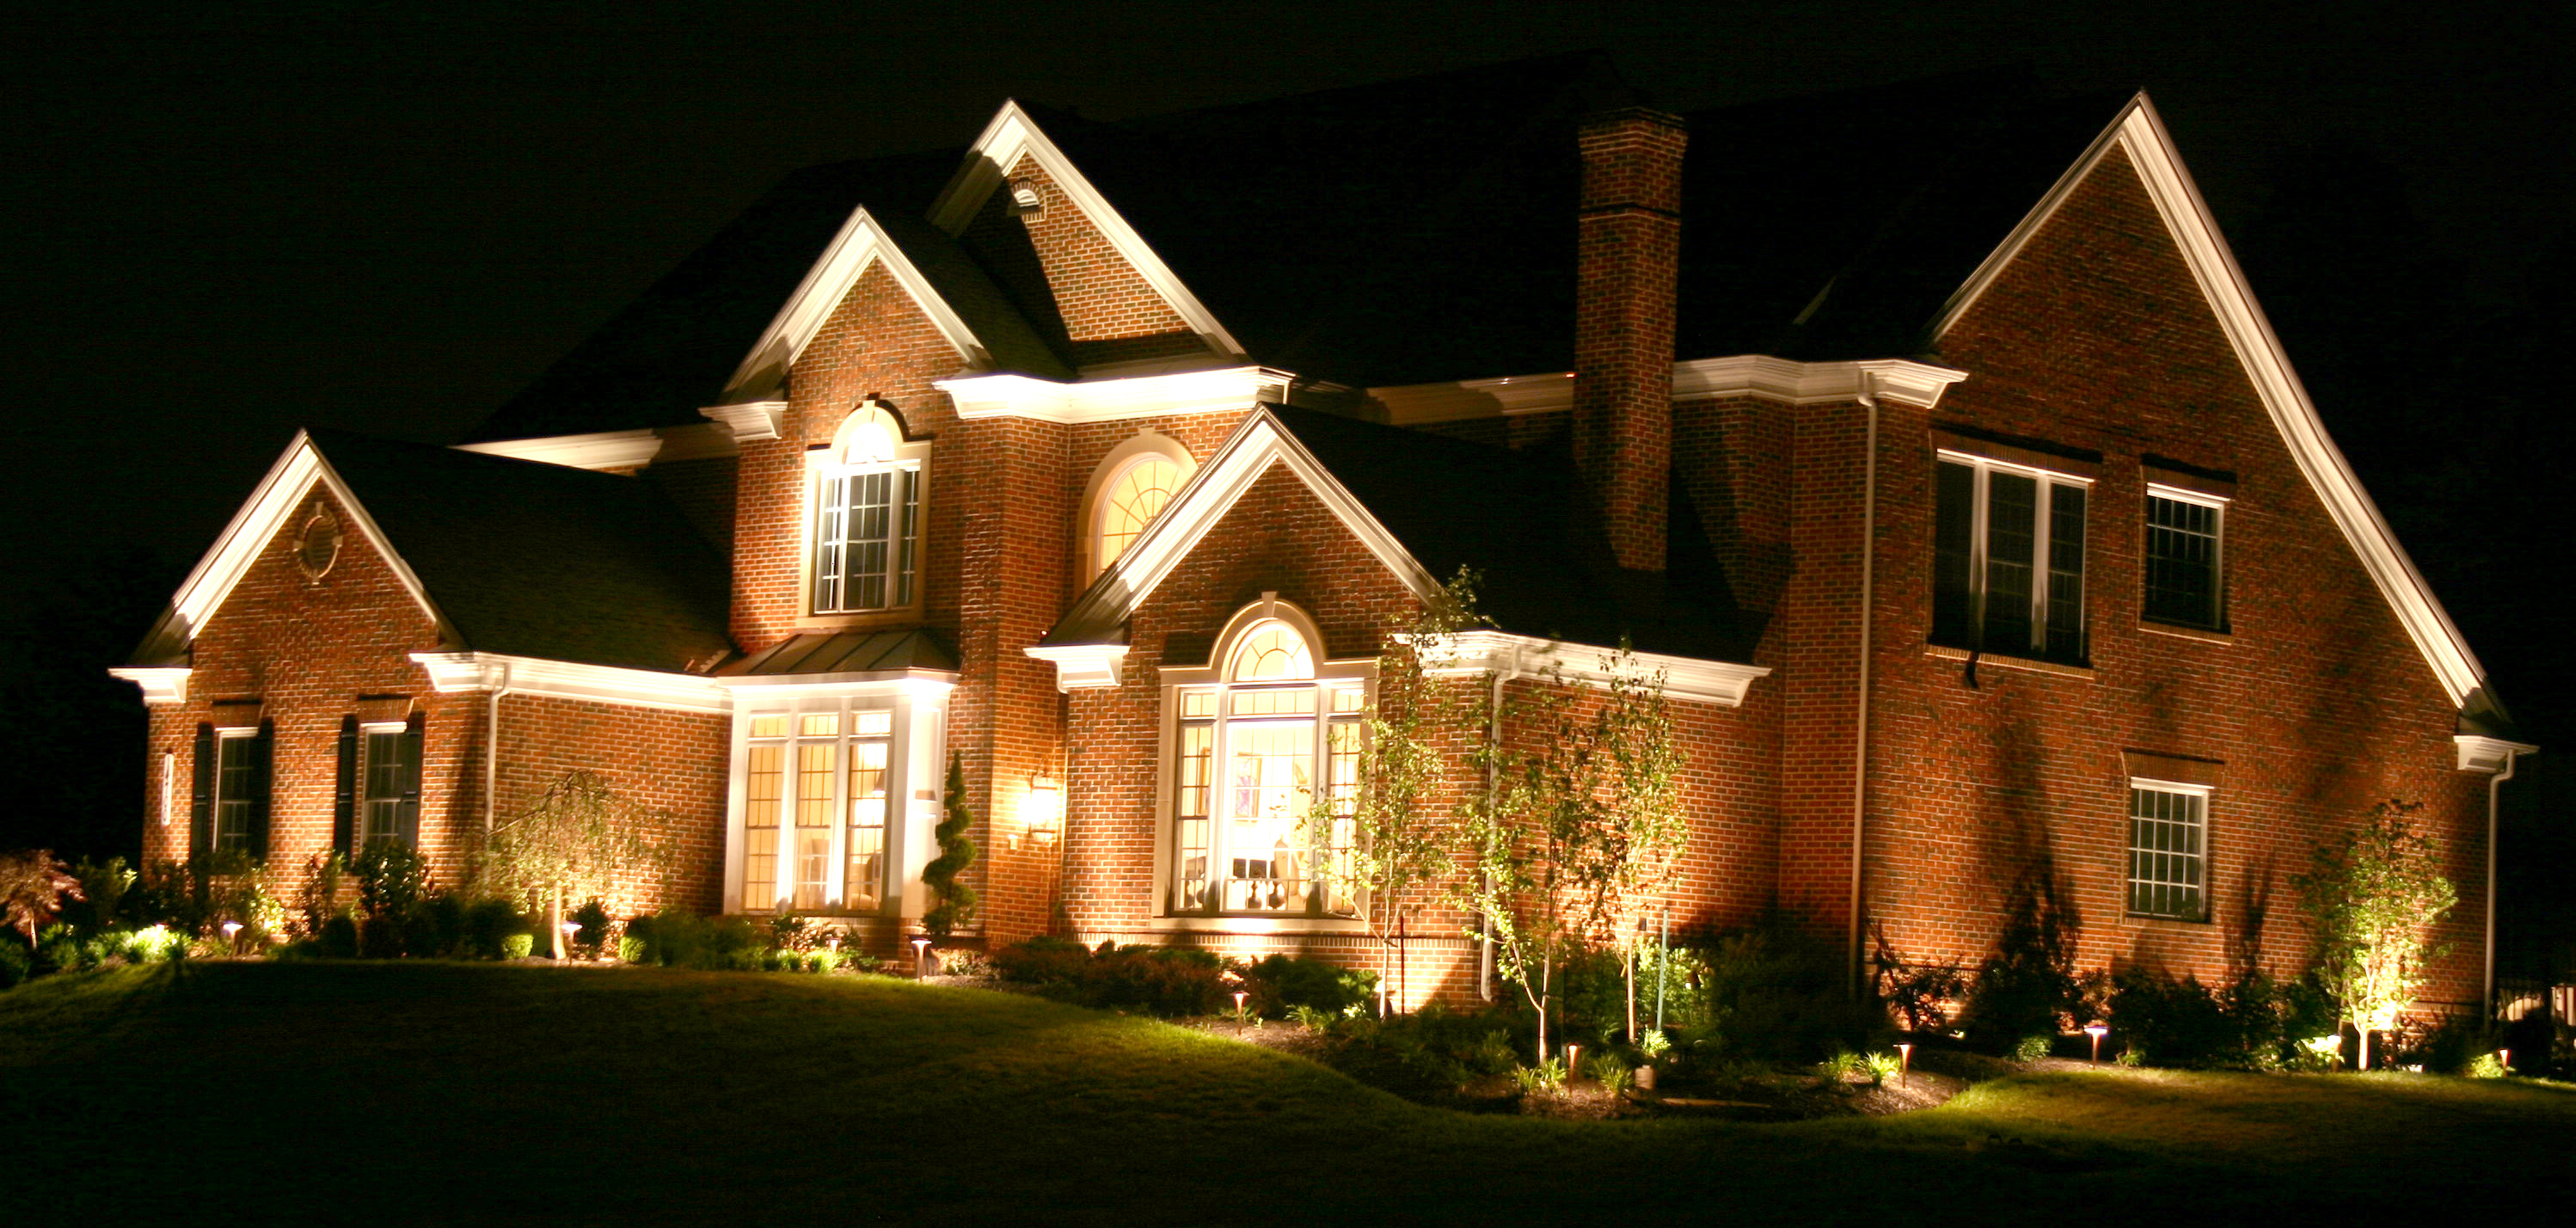 Outdoor Lighting Company Outdoor lighting baltimore maryland as the number one outdoor lighting company in baltimore maryland and surrounding areas we feel that its imperative you know your options when looking for workwithnaturefo